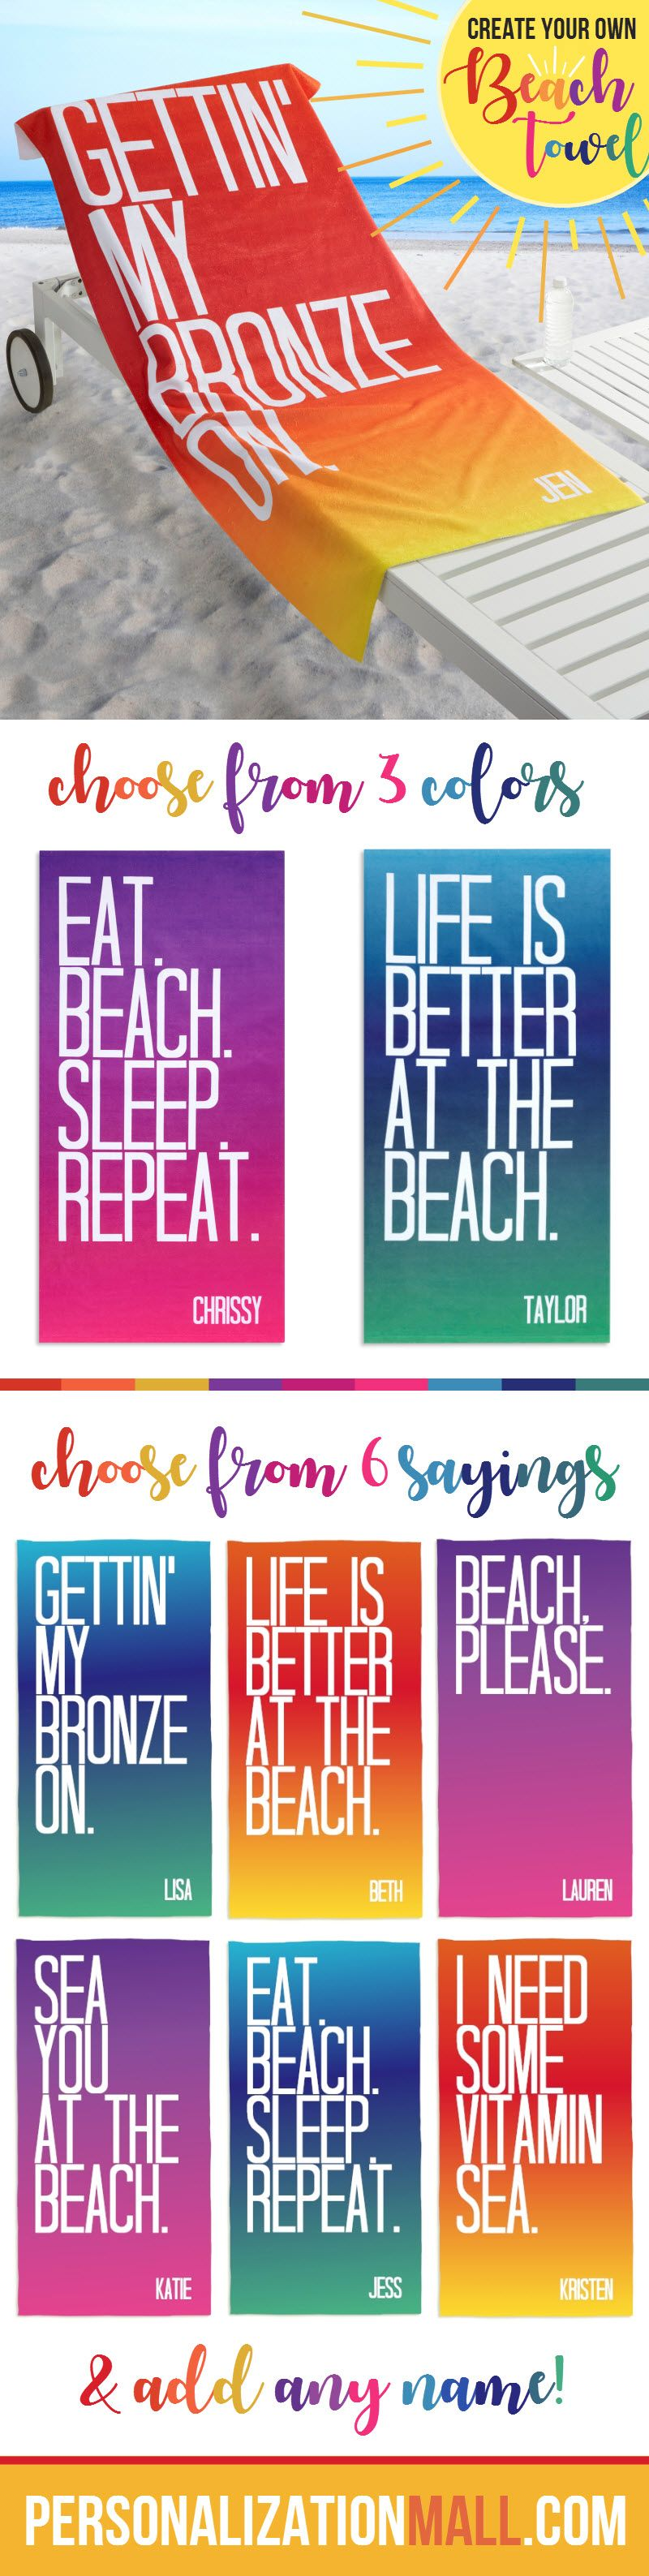 Beach Quotes Personalized 30x60 Beach Towel With Images